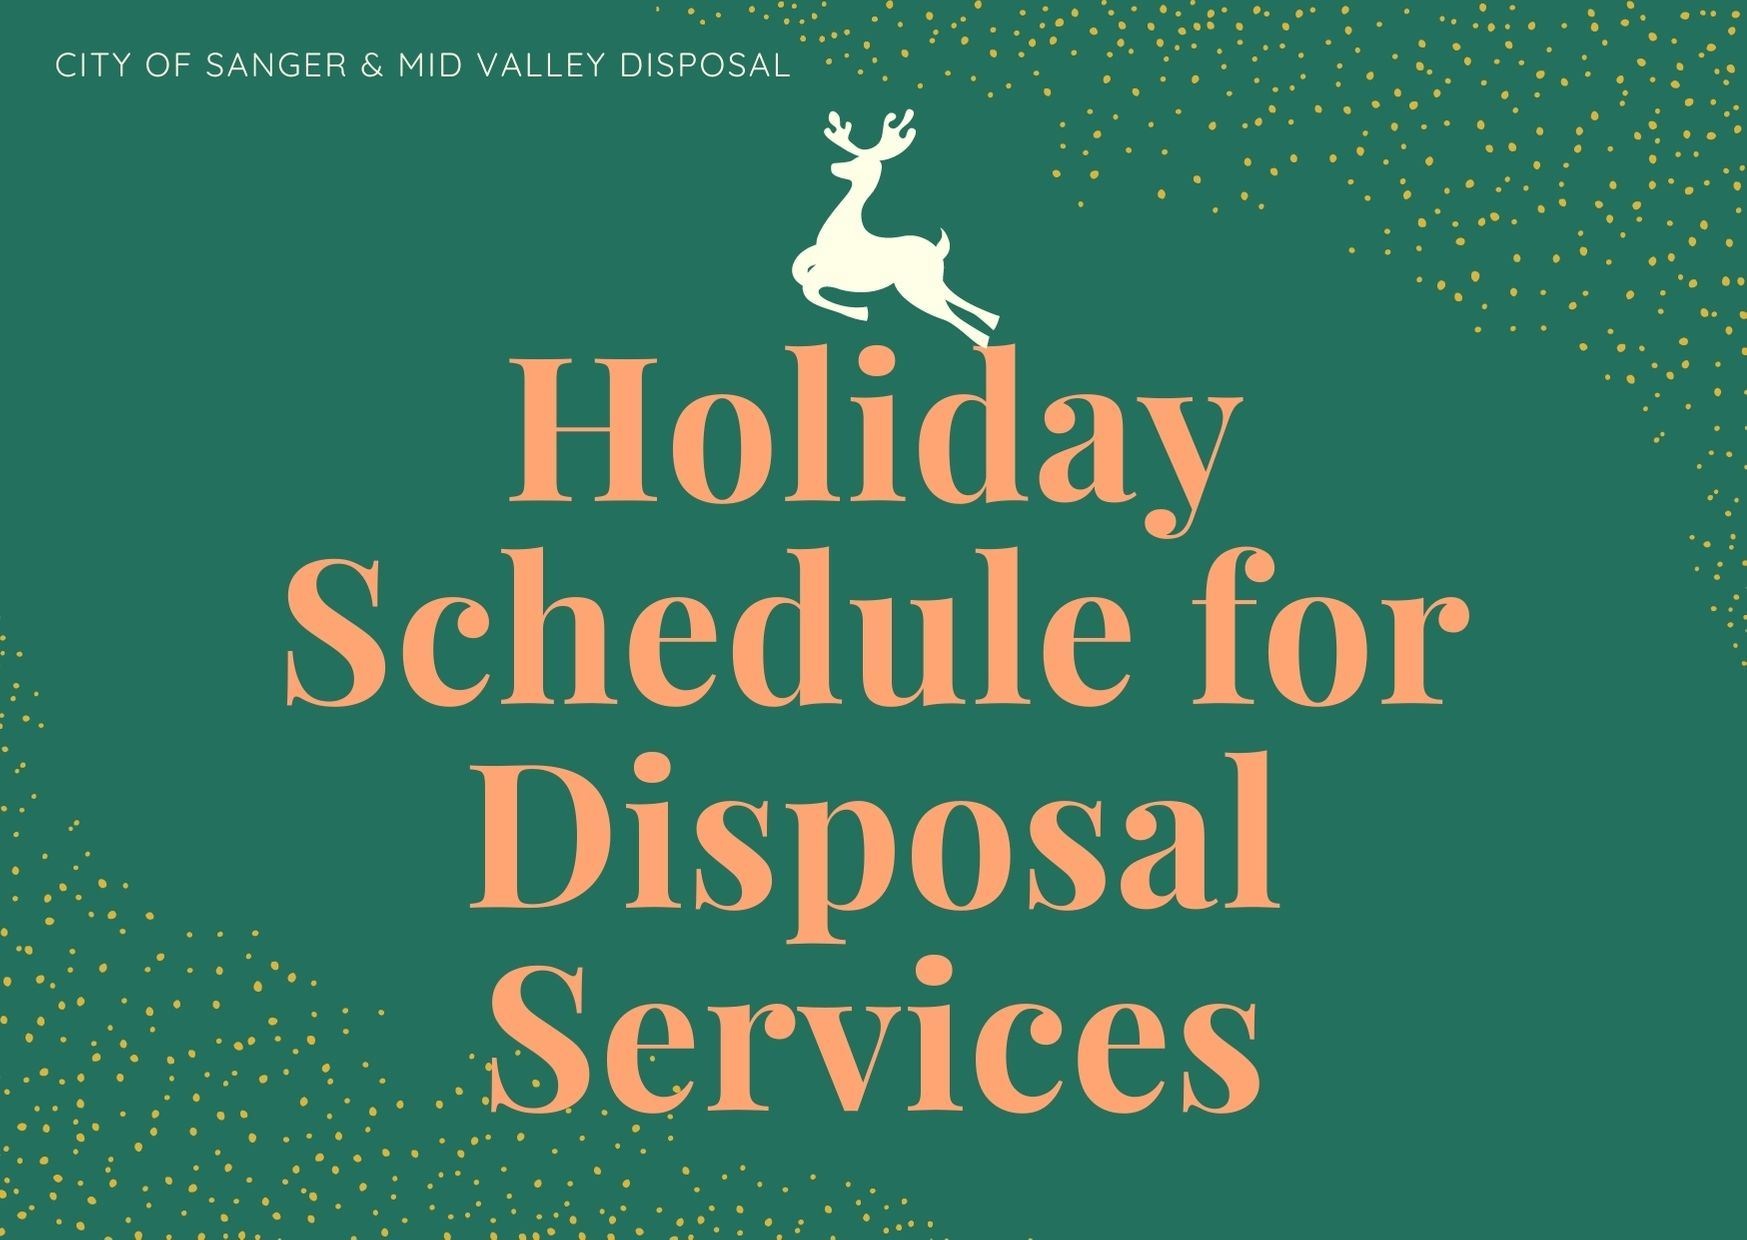 Holiday Schedule for Disposal Services